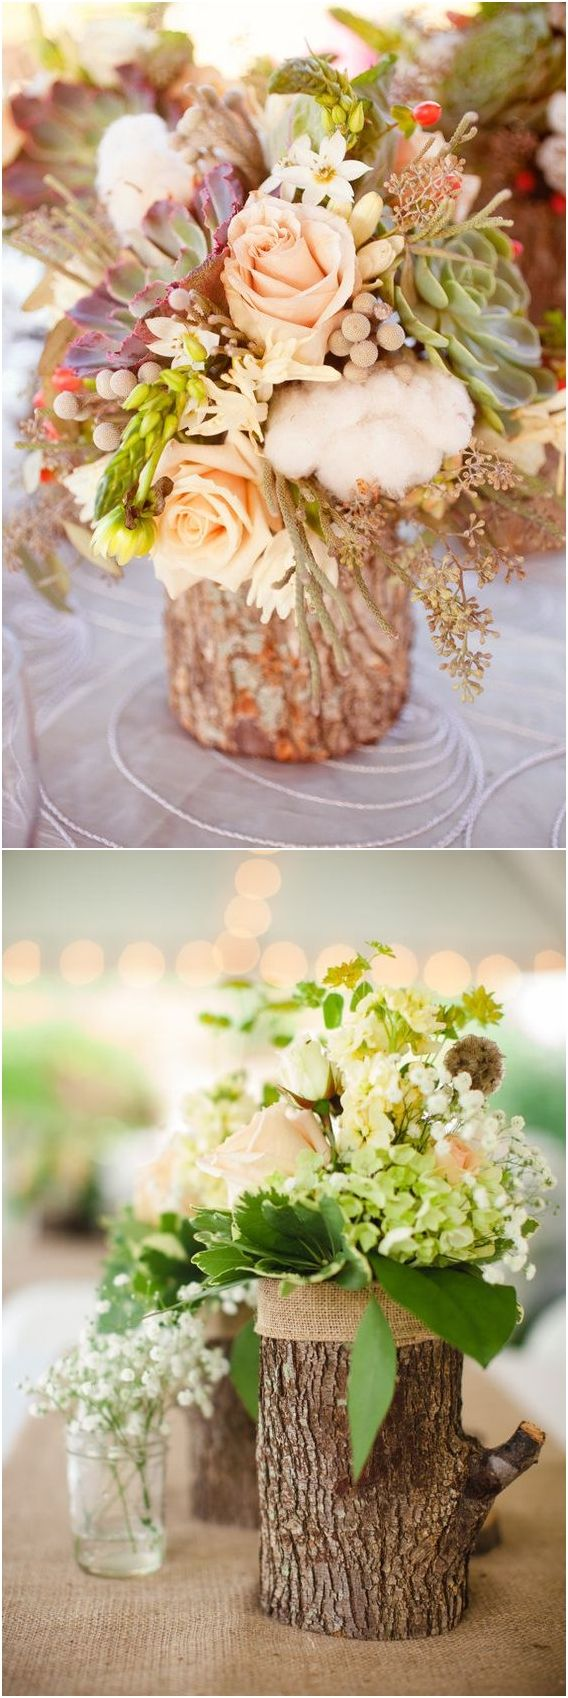 100 Fab Country Rustic Wedding Ideas with Tree Stump  #rusticwedding #wedding #weddingideas #weddinginspiration